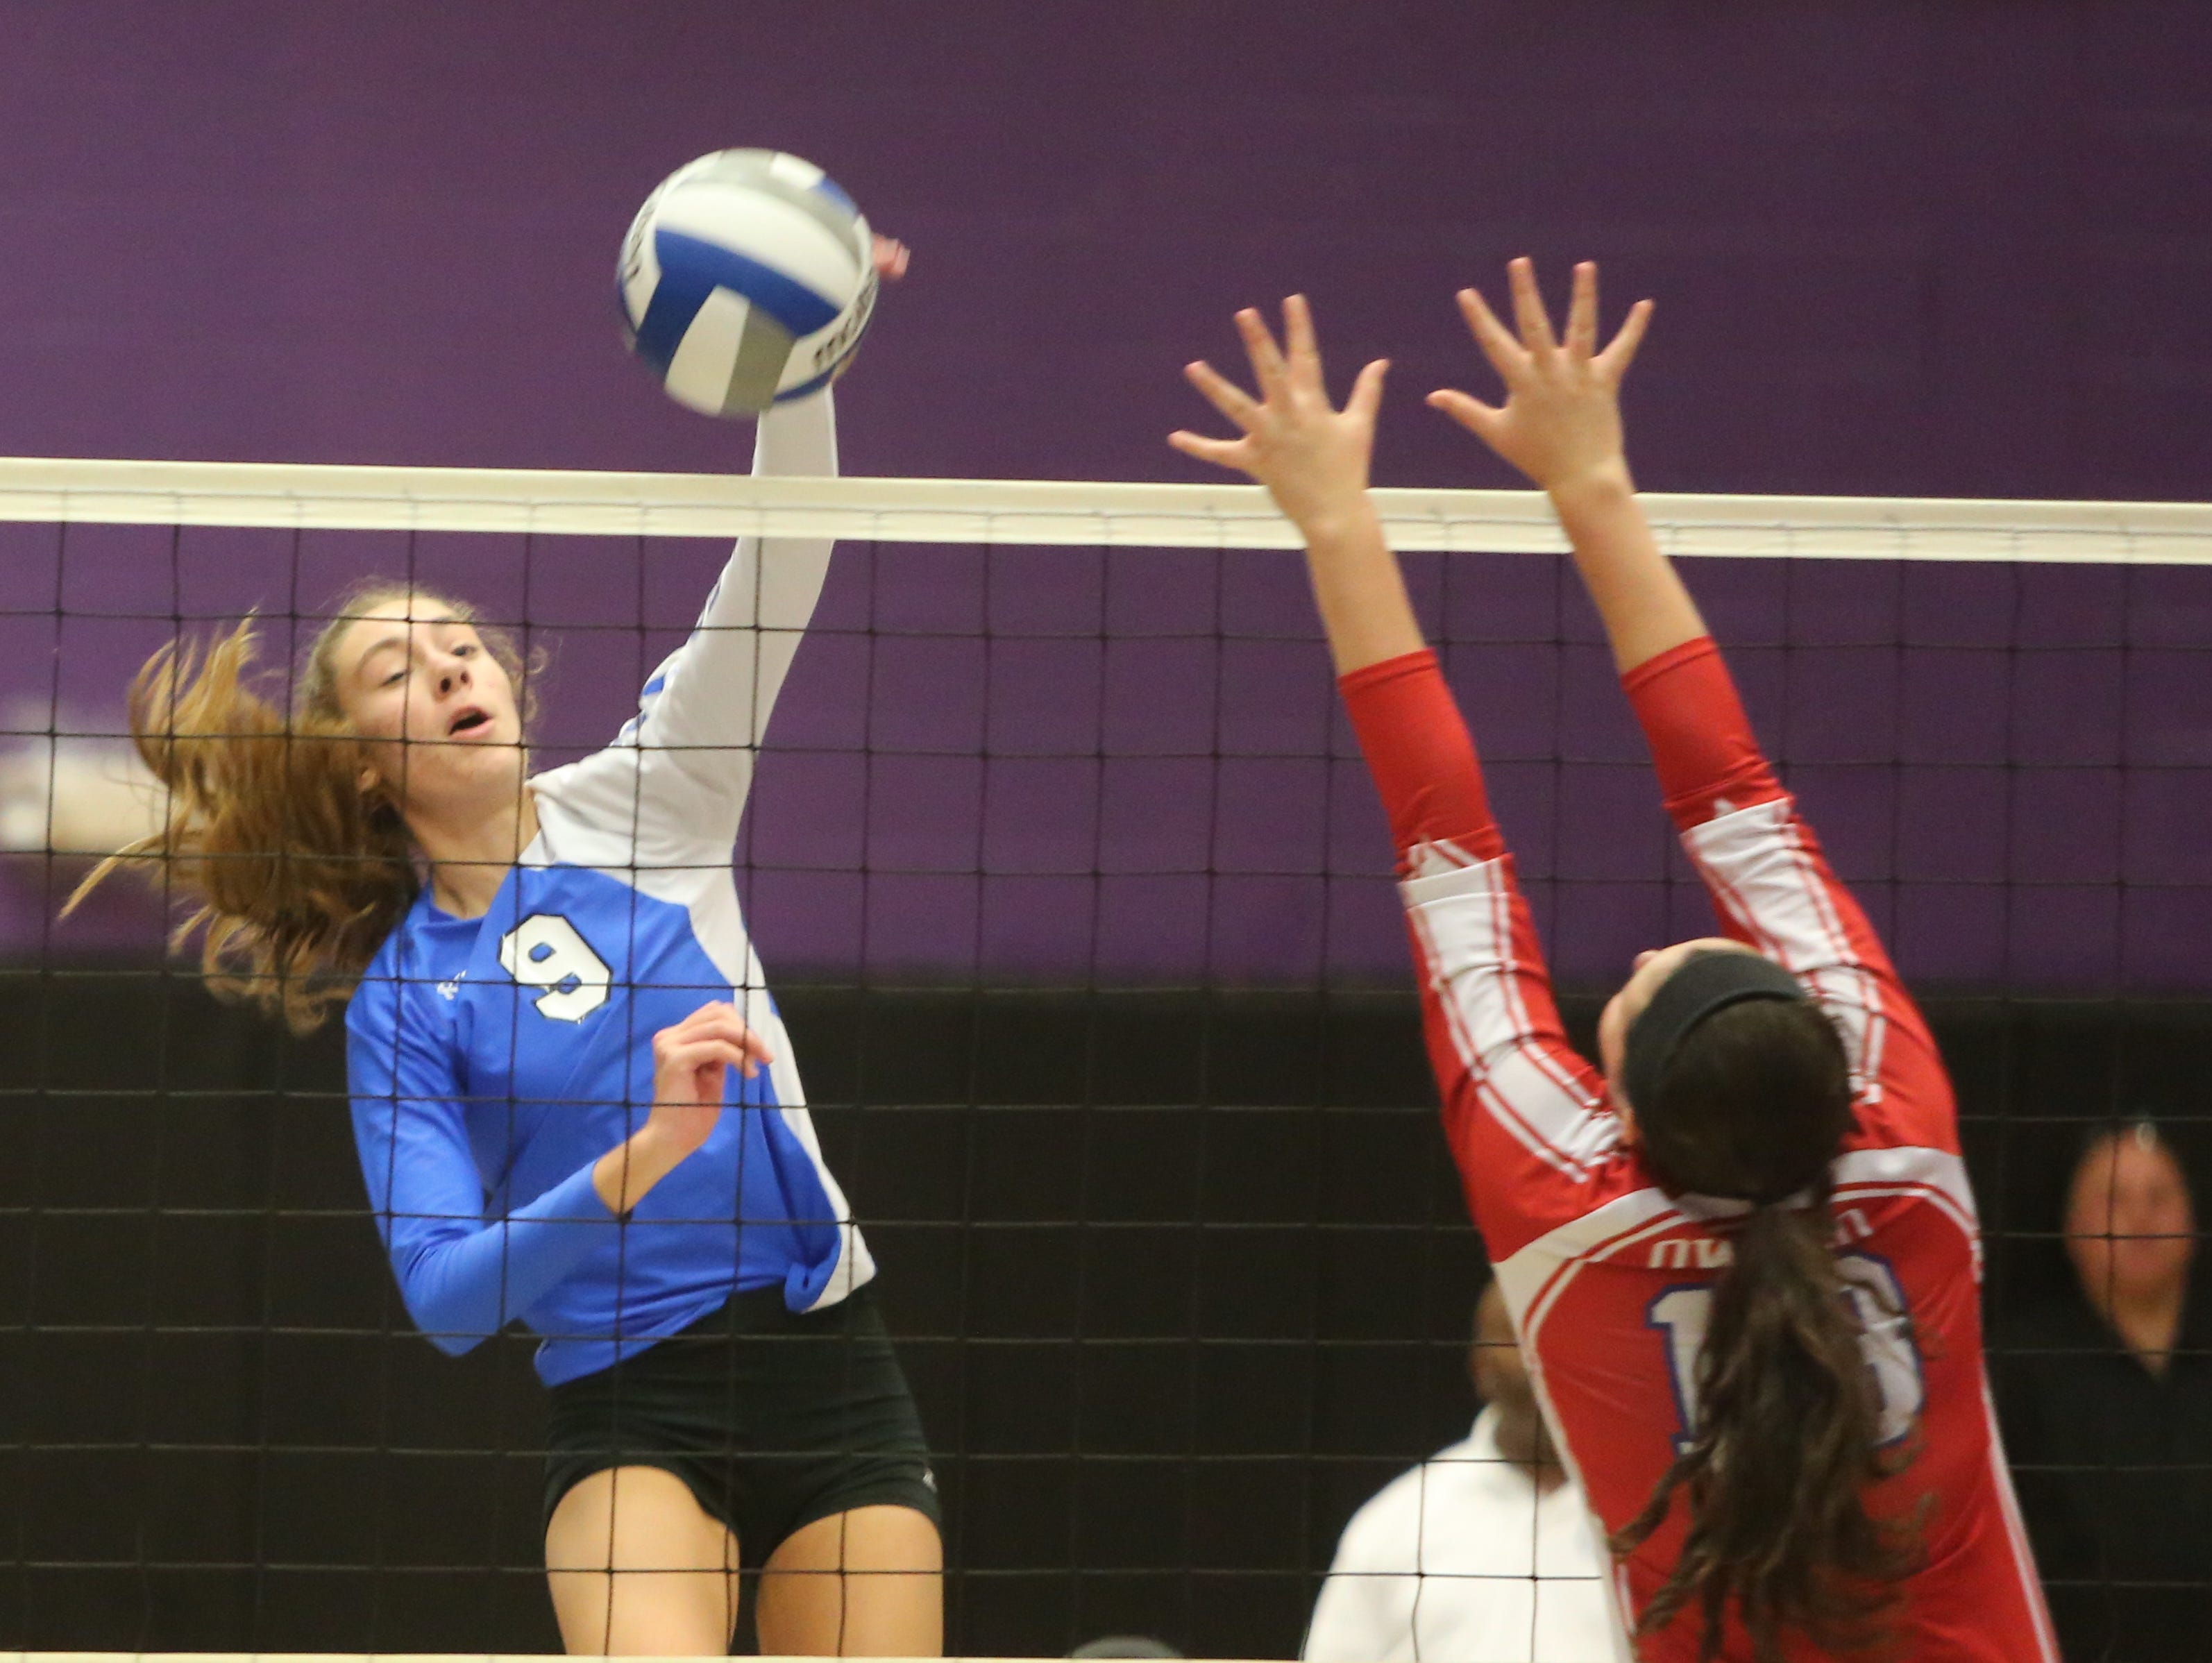 Hen Hud's Zoe Staats returns a shot to Owego during the Class B regional final between Hendrick Hudson and Owego at John Jay High School in Cross River, Nov. 14, 2015. Hen Hud lost to Owego in five games.